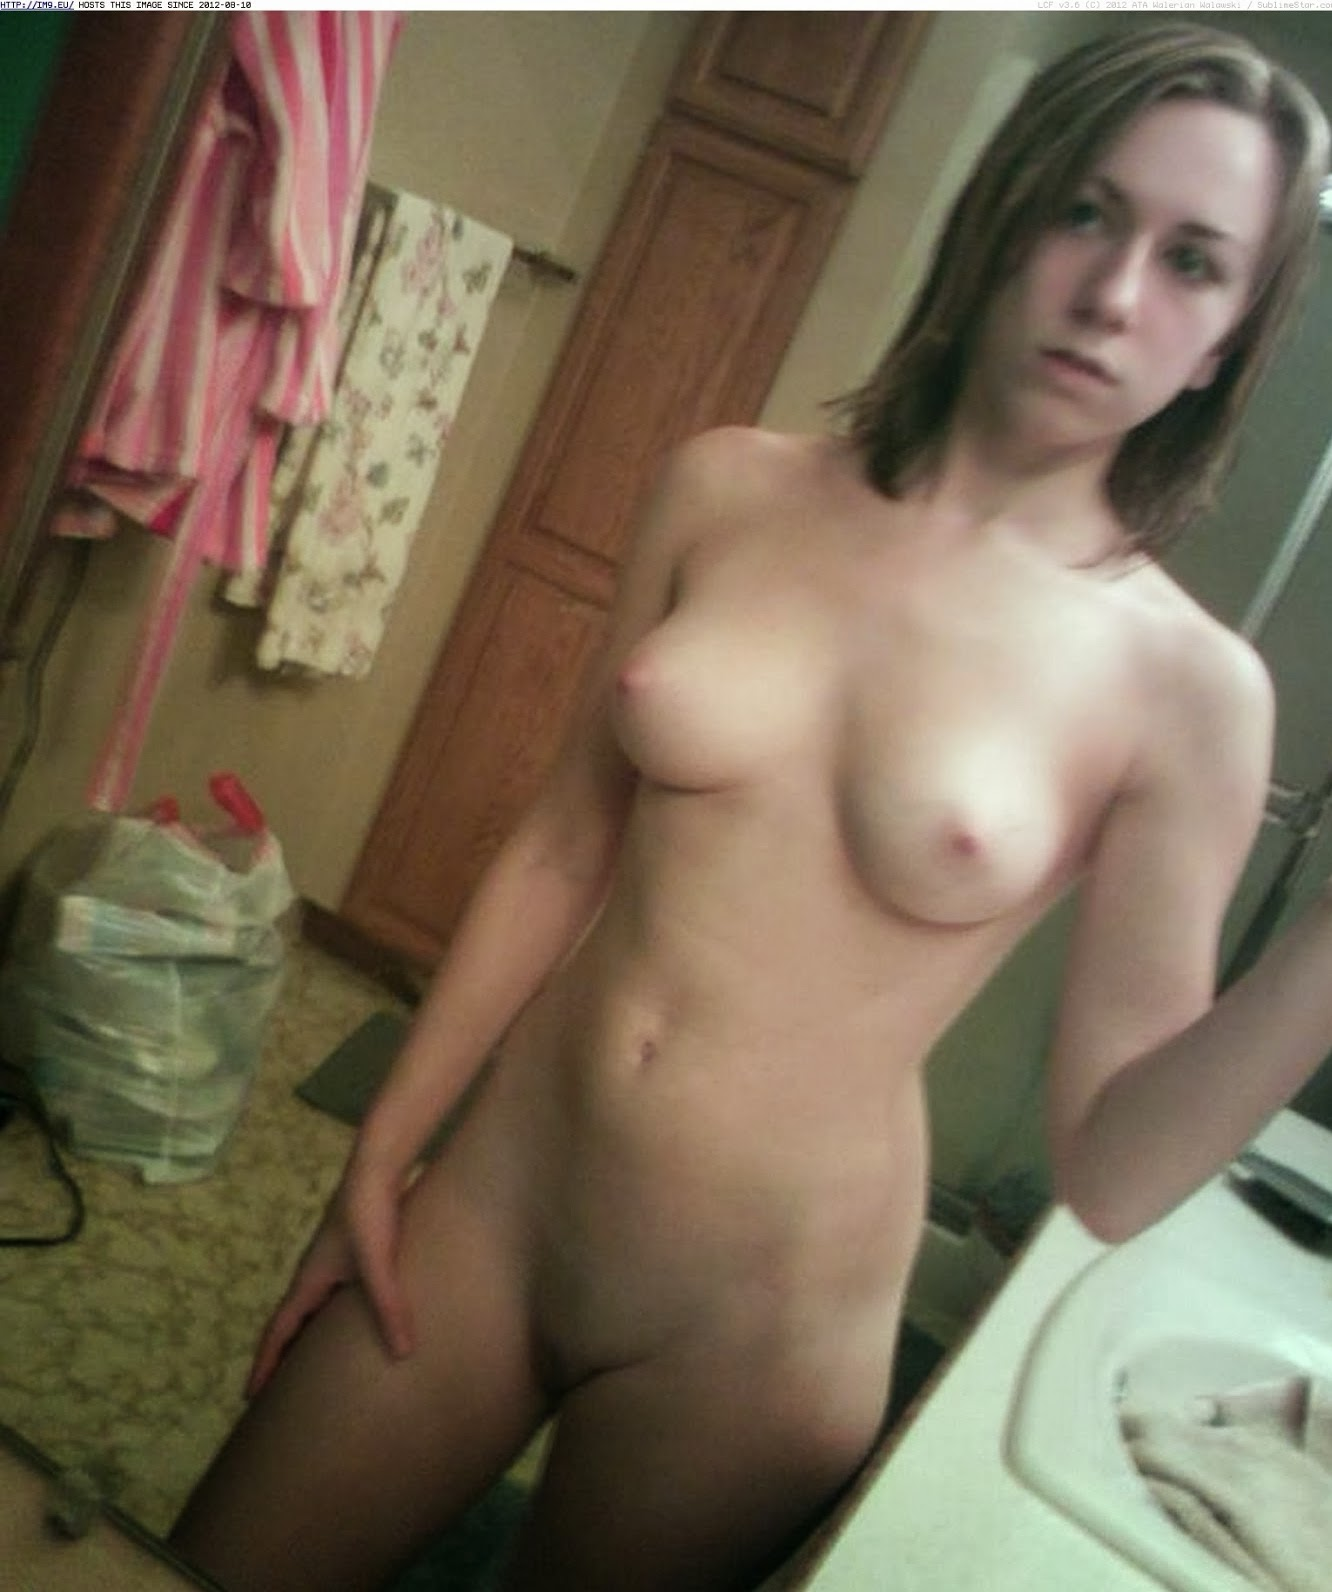 Models brother and sister self shot nude tiny sex pics